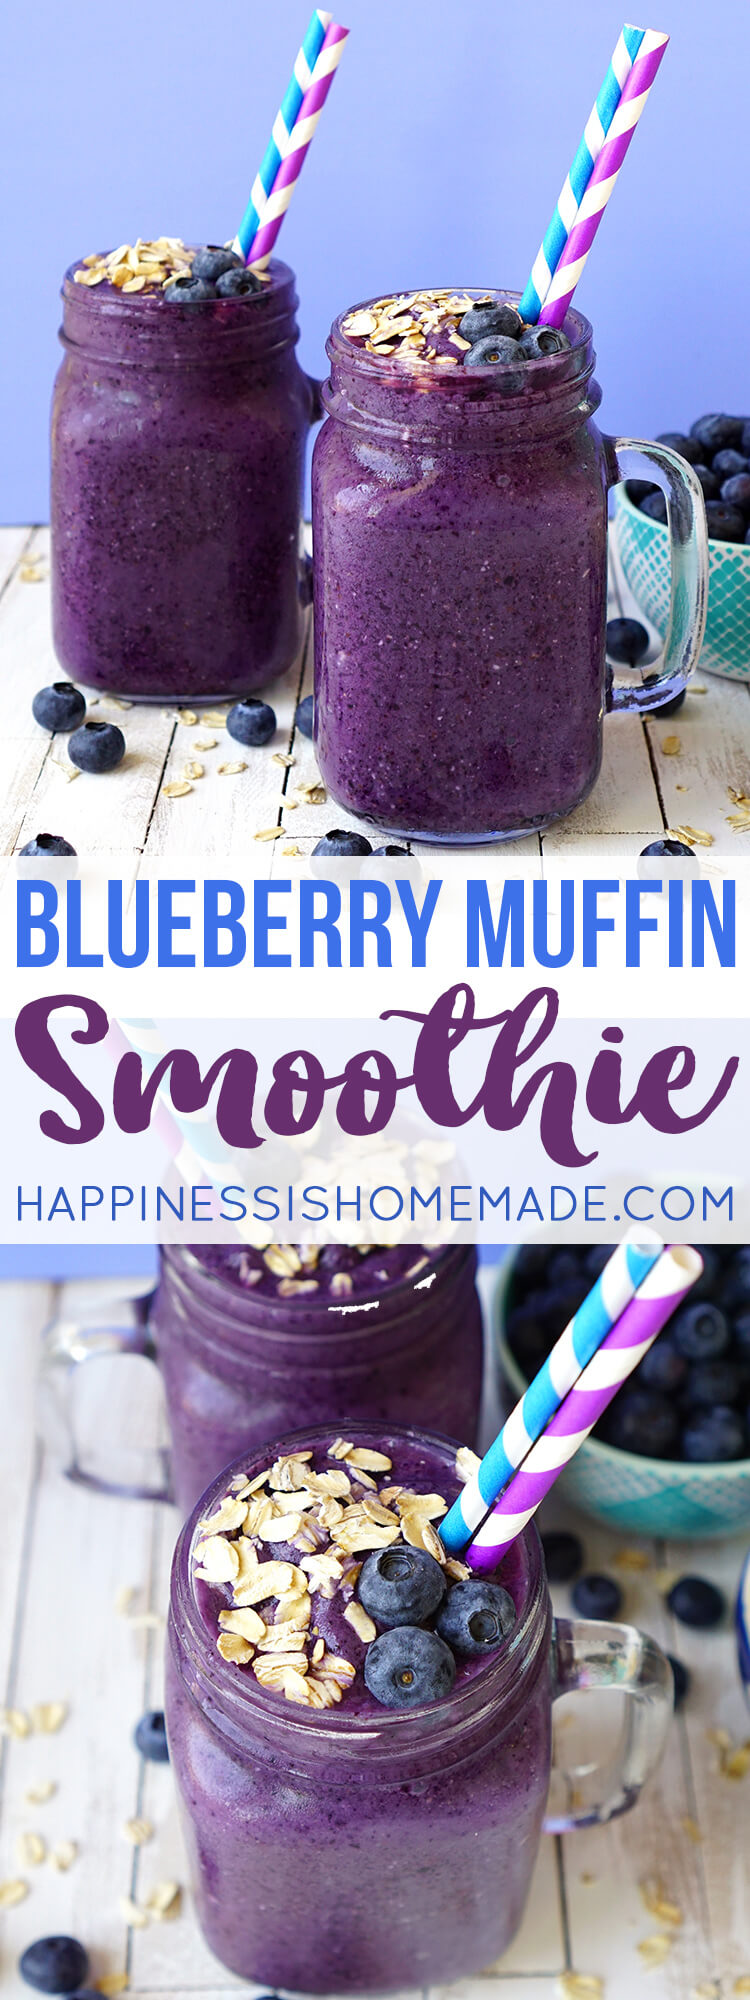 Healthy and Delicious Blueberry Muffin Smoothie Recipe